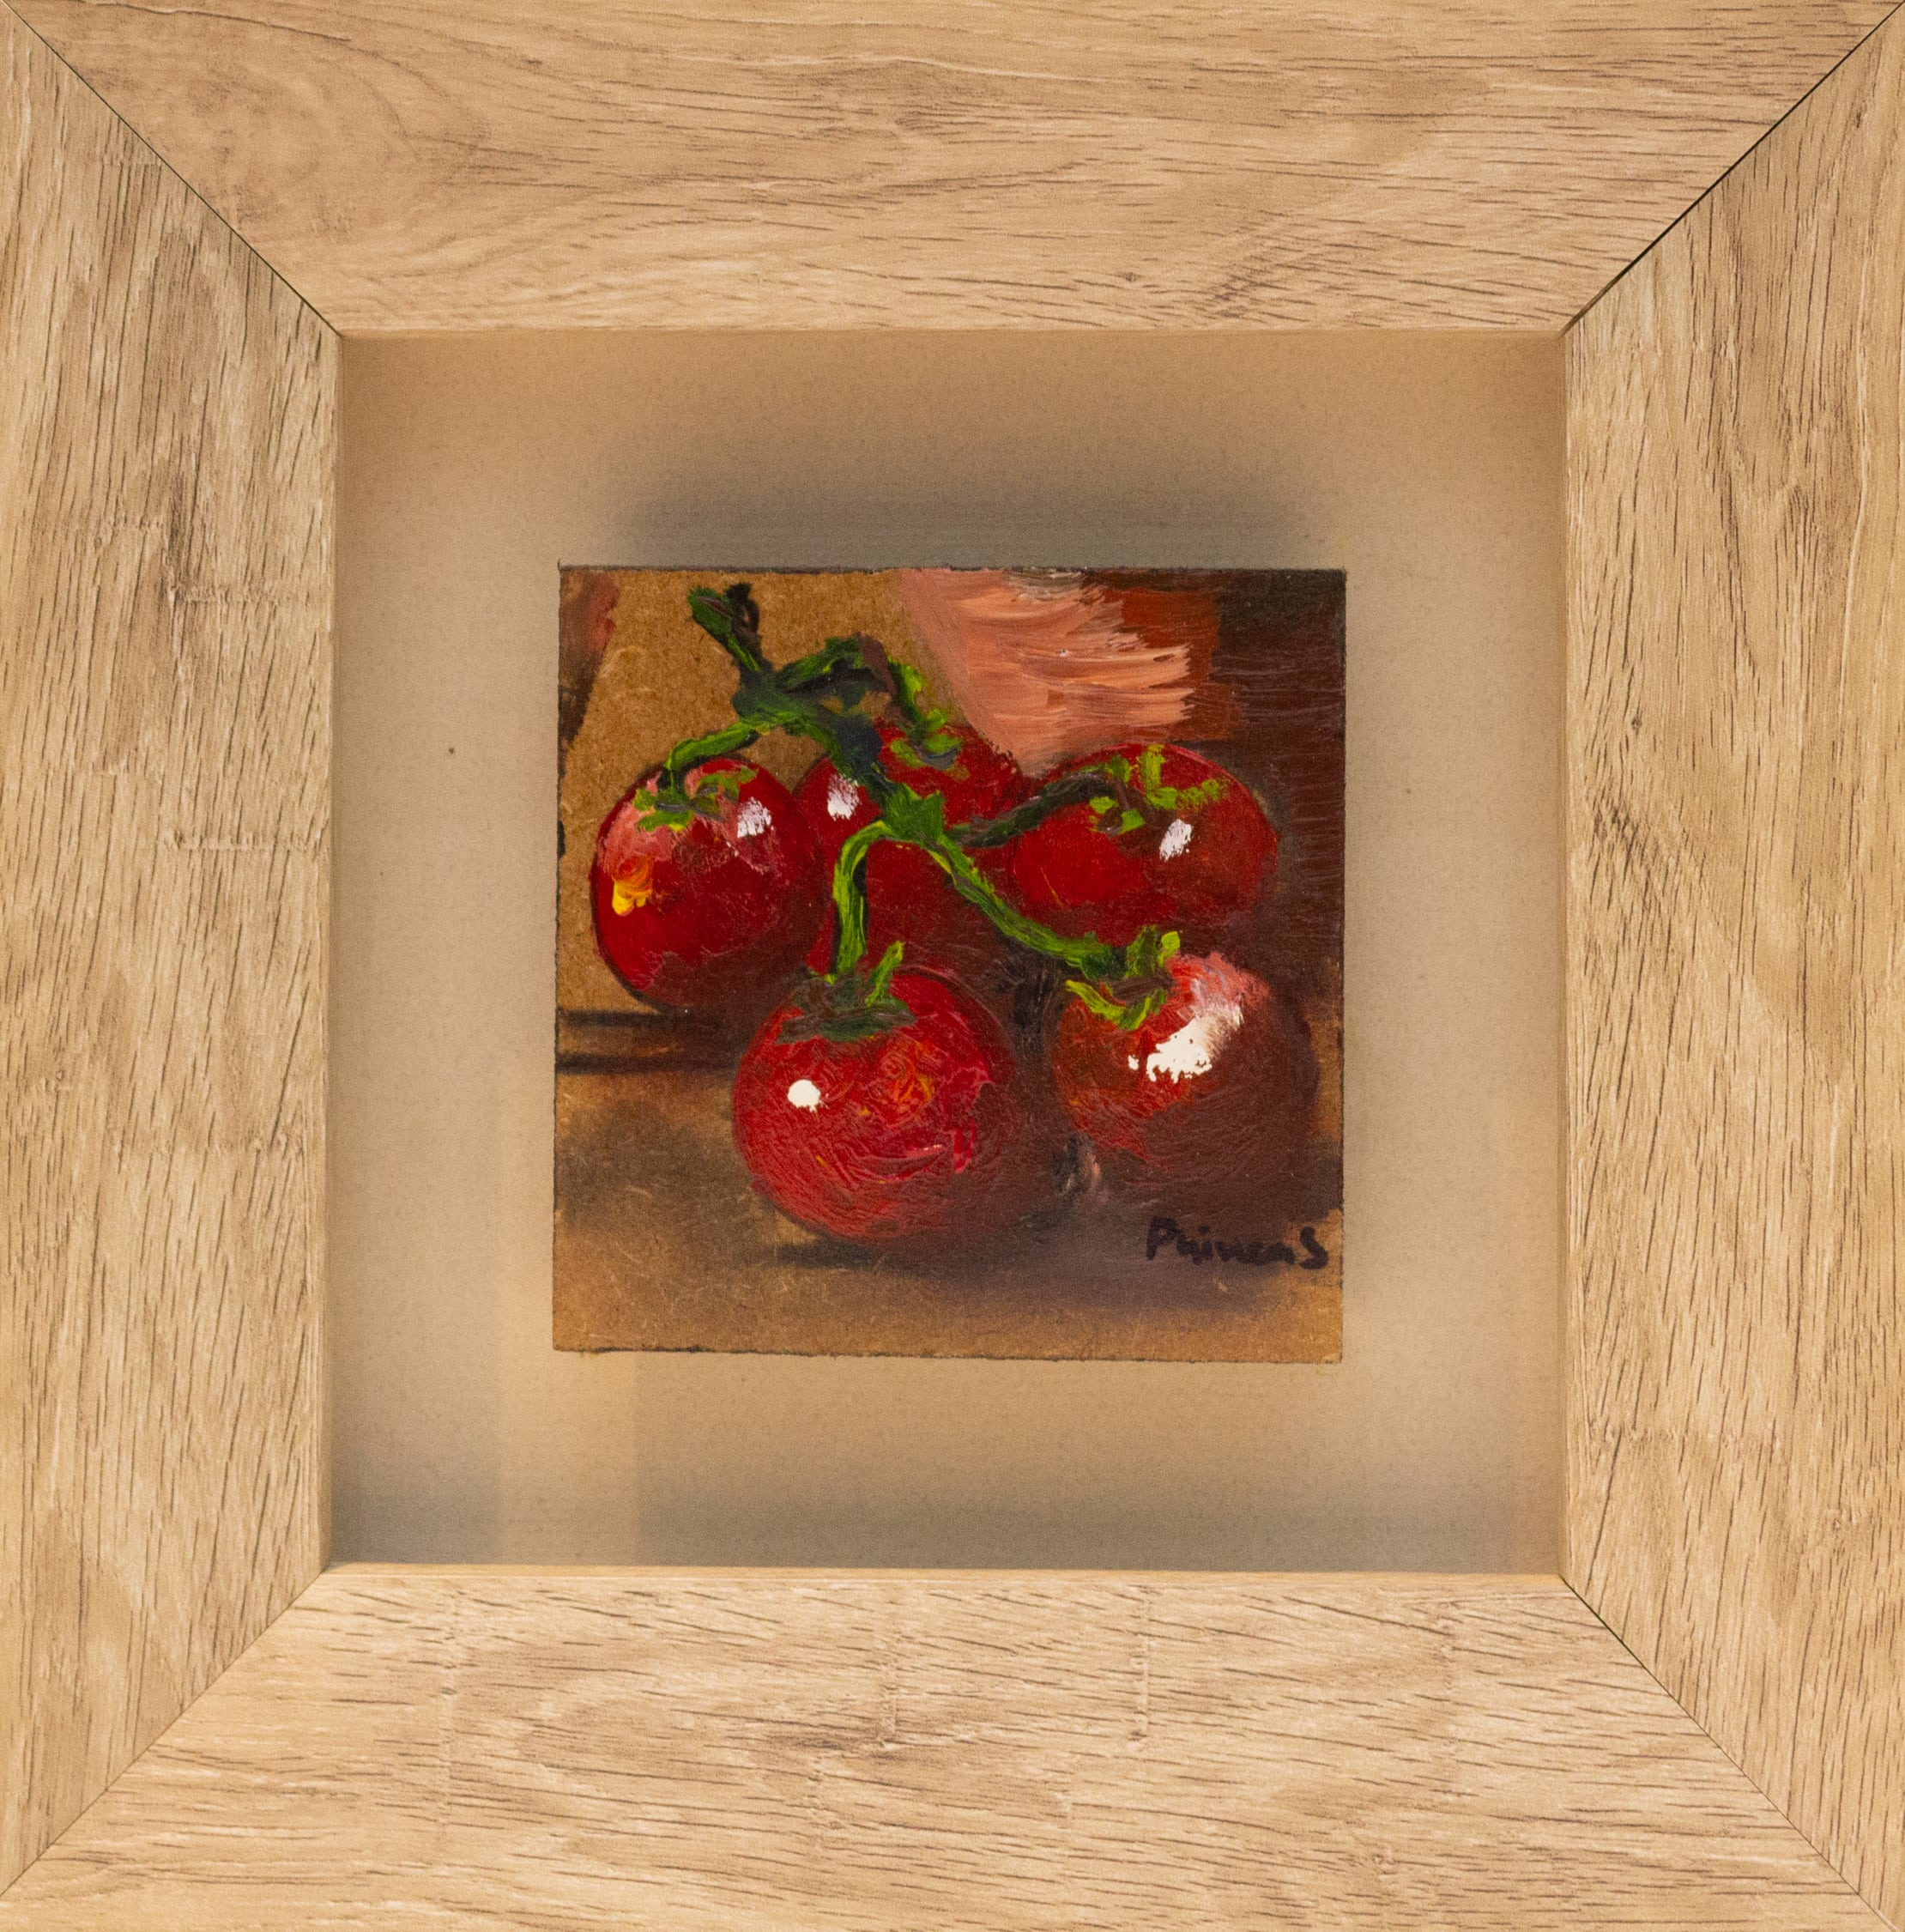 <span class=&#34;link fancybox-details-link&#34;><a href=&#34;/artists/102-phineas-malema/works/2708-phineas-malema-four-tomatoes-2017/&#34;>View Detail Page</a></span><div class=&#34;artist&#34;><strong>Phineas Malema</strong></div> <div class=&#34;title&#34;><em>Four Tomatoes</em>, 2017</div> <div class=&#34;medium&#34;>Oil On Board</div> <div class=&#34;dimensions&#34;>24cm x 24cm x 4.5cm</div><div class=&#34;price&#34;>R700.00</div>